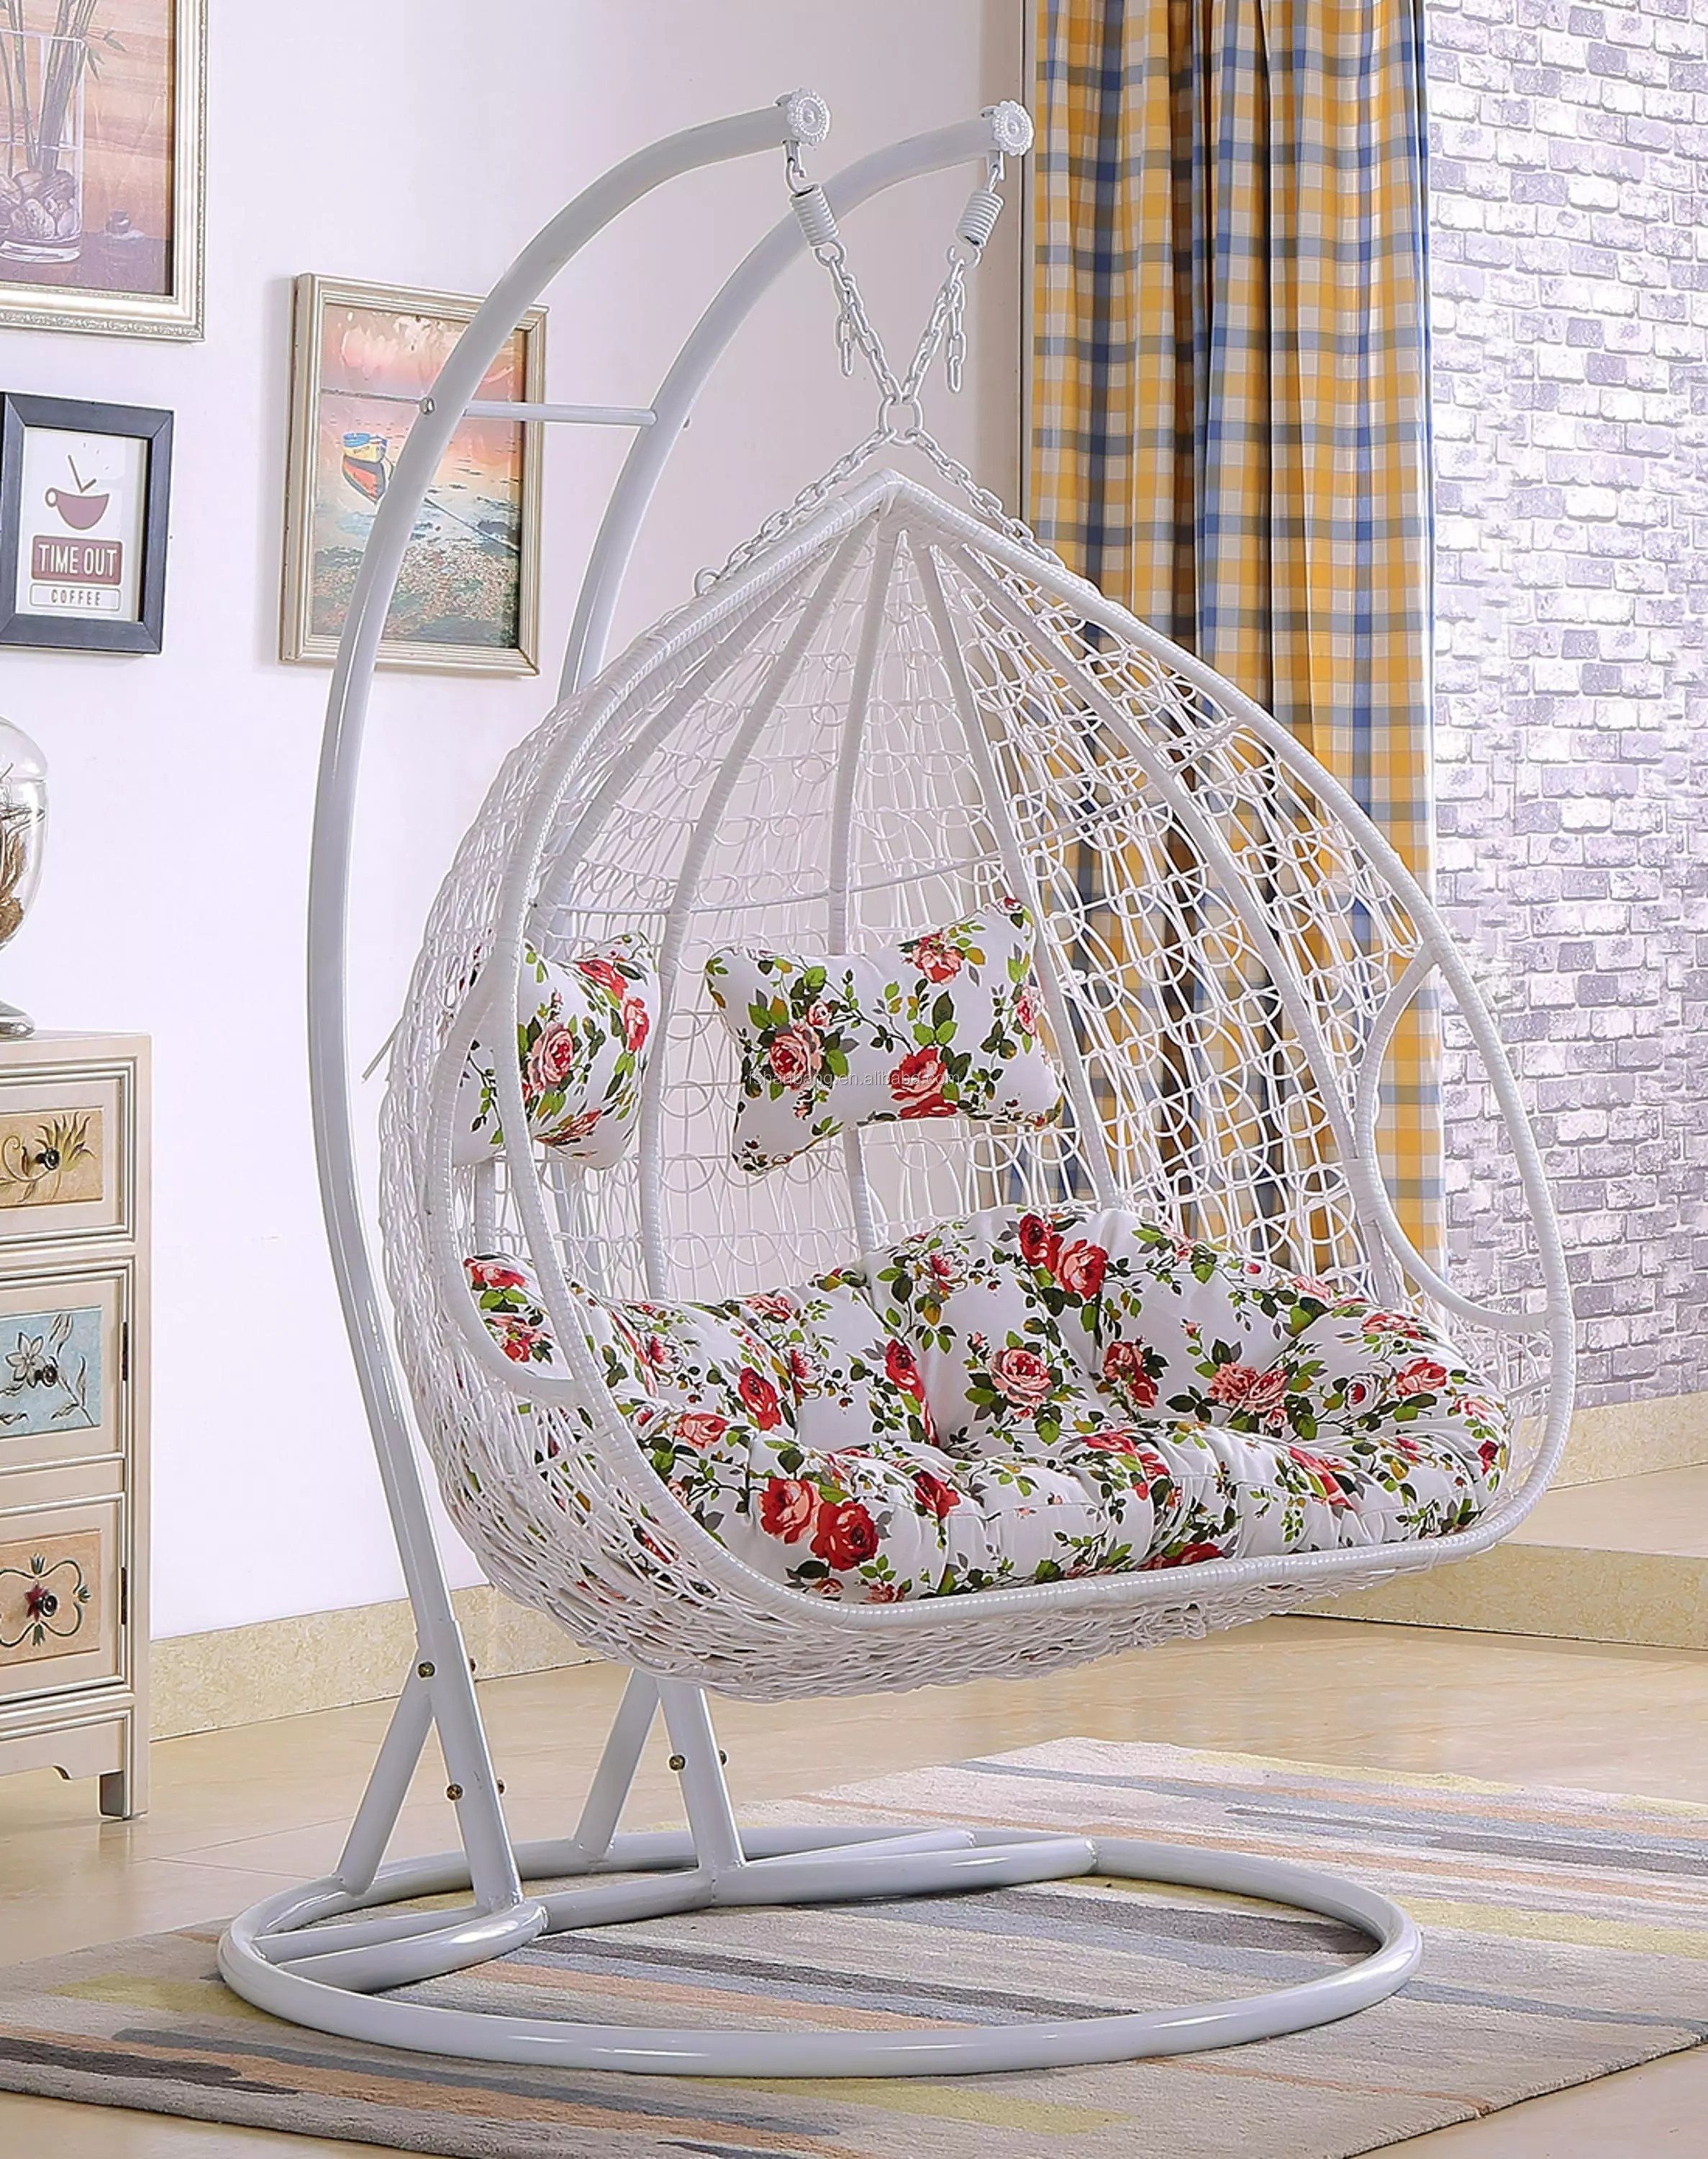 luxury outdoor 2 person garden patio swing hanging chair view hanging chair love rattan product details from foshan hanbang furniture co ltd on